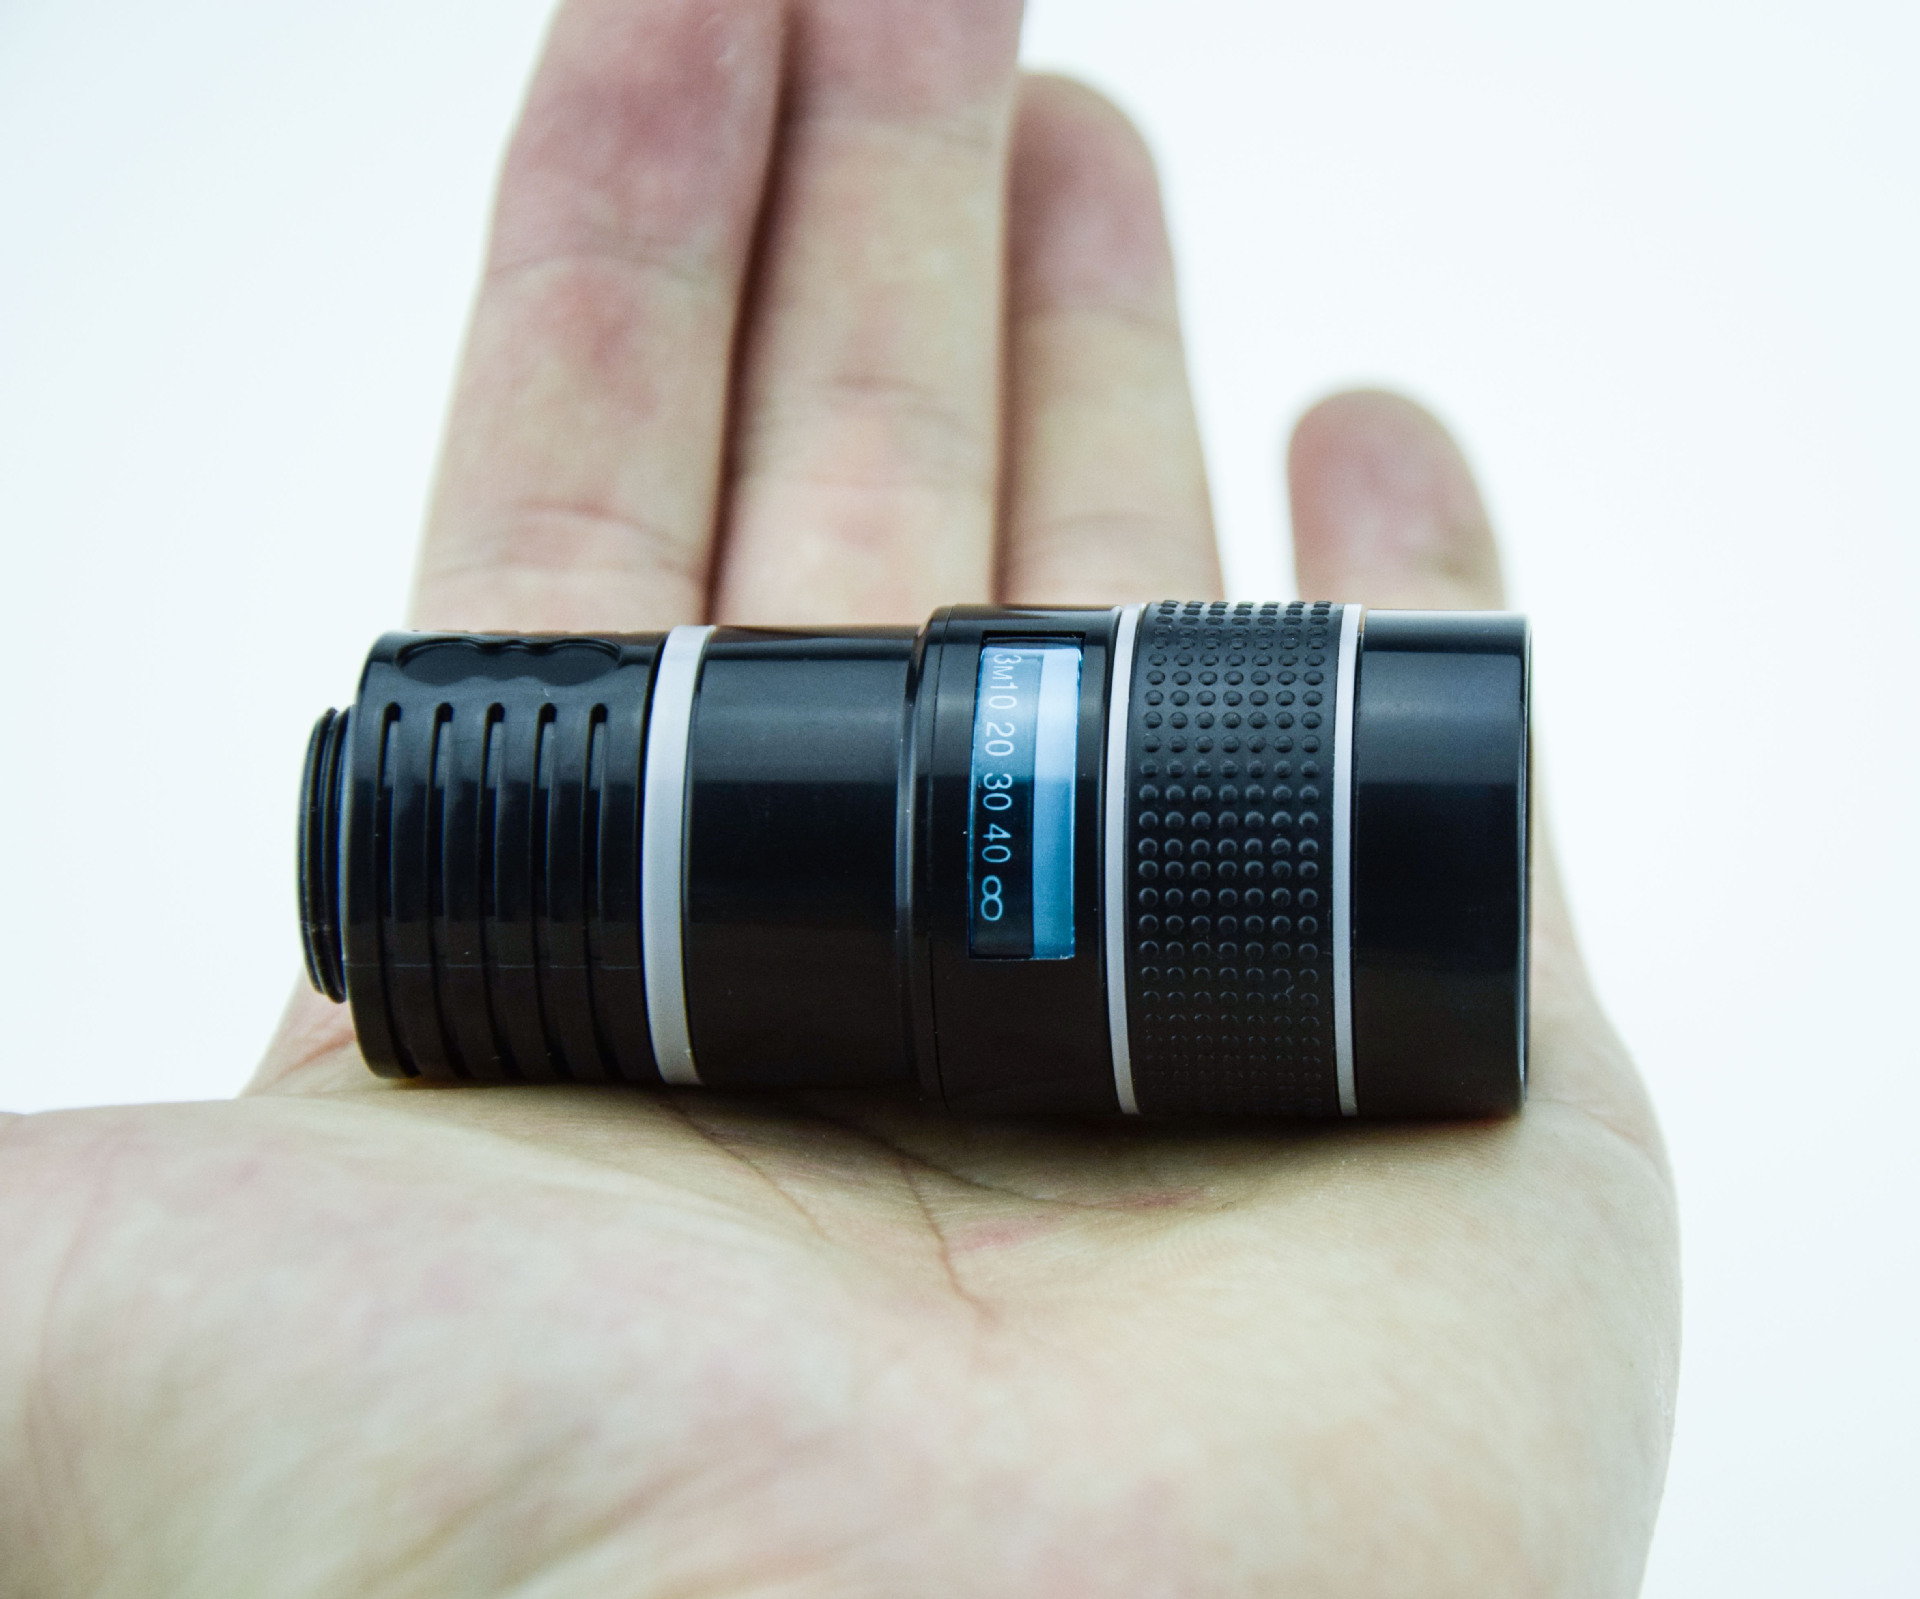 Mobile phone manufacturers supply telescope 8 times the mobile plug